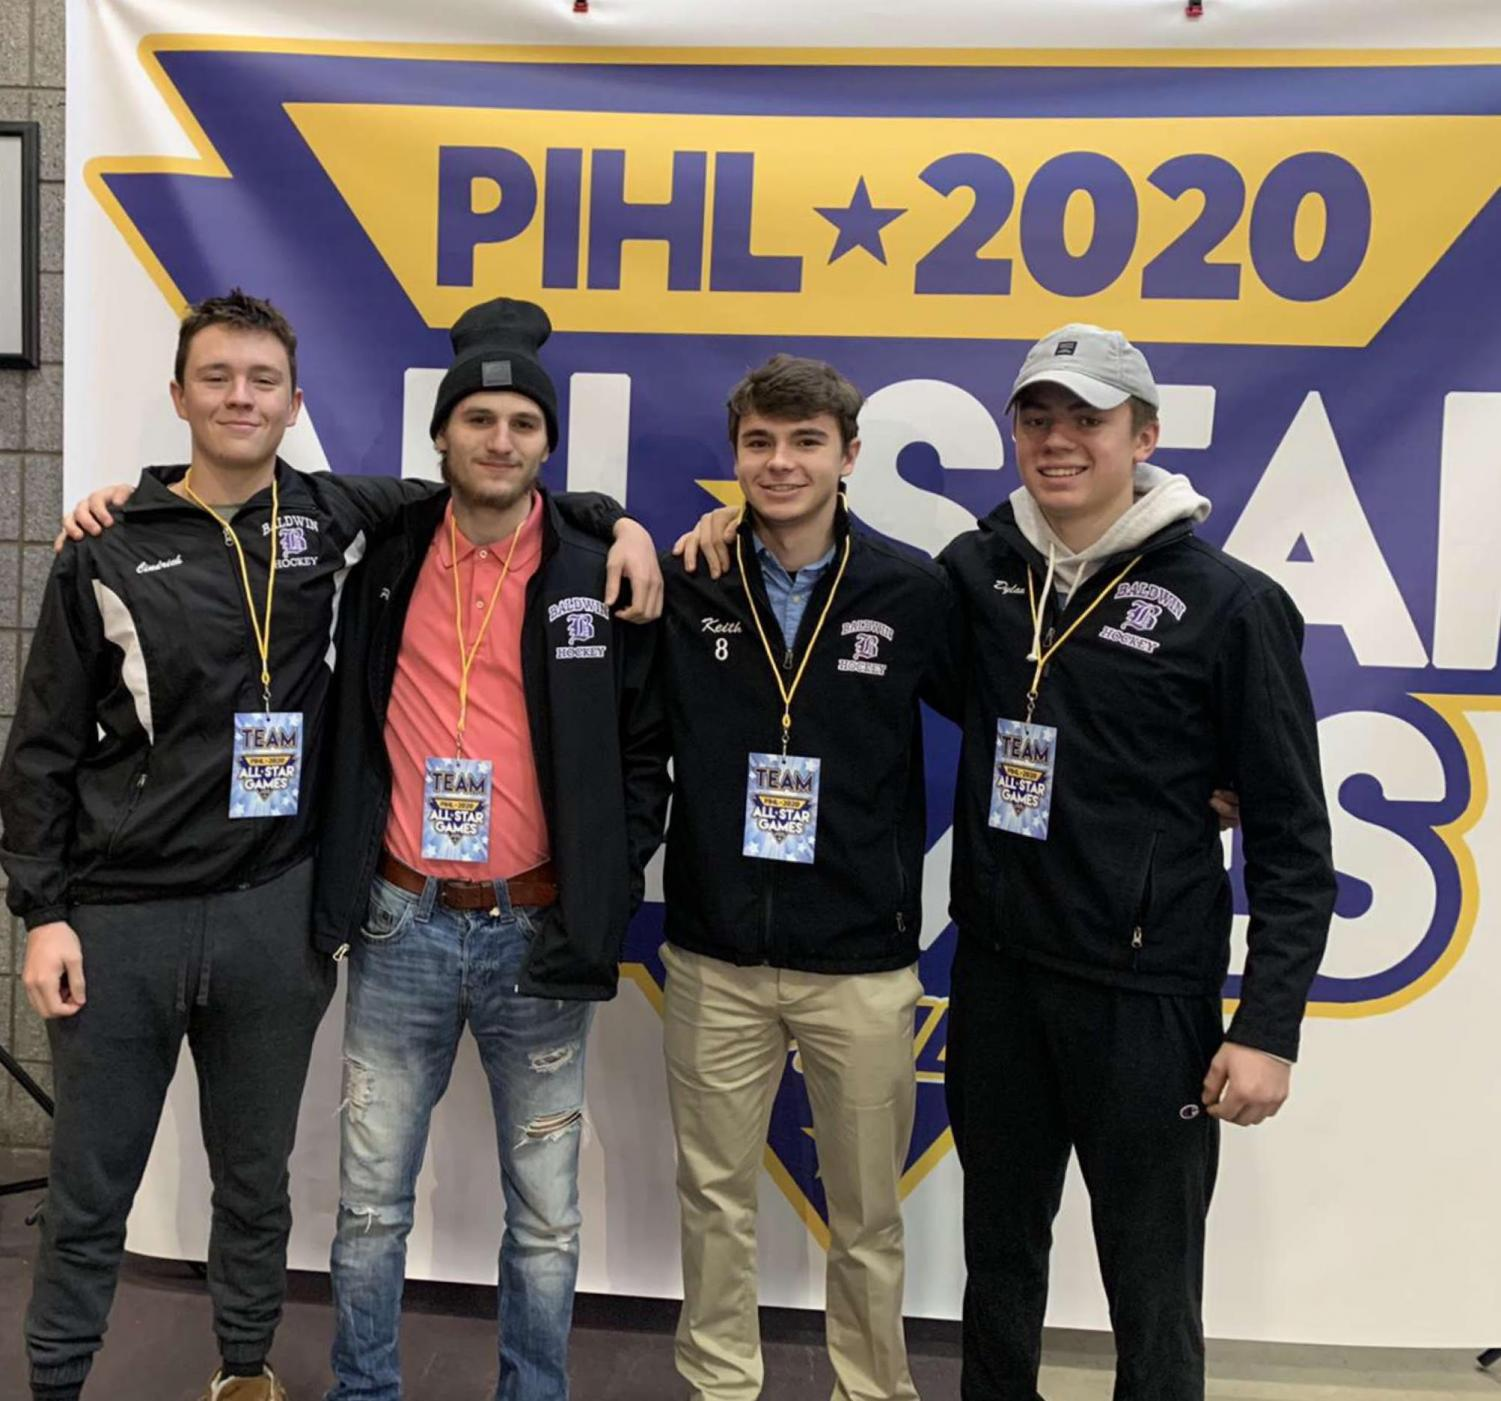 Tanner Cindrich (left) was selected to play at the PIHL All-Star game. The others were Paul Zmuda, Keith Reed, and Dylan Belack.